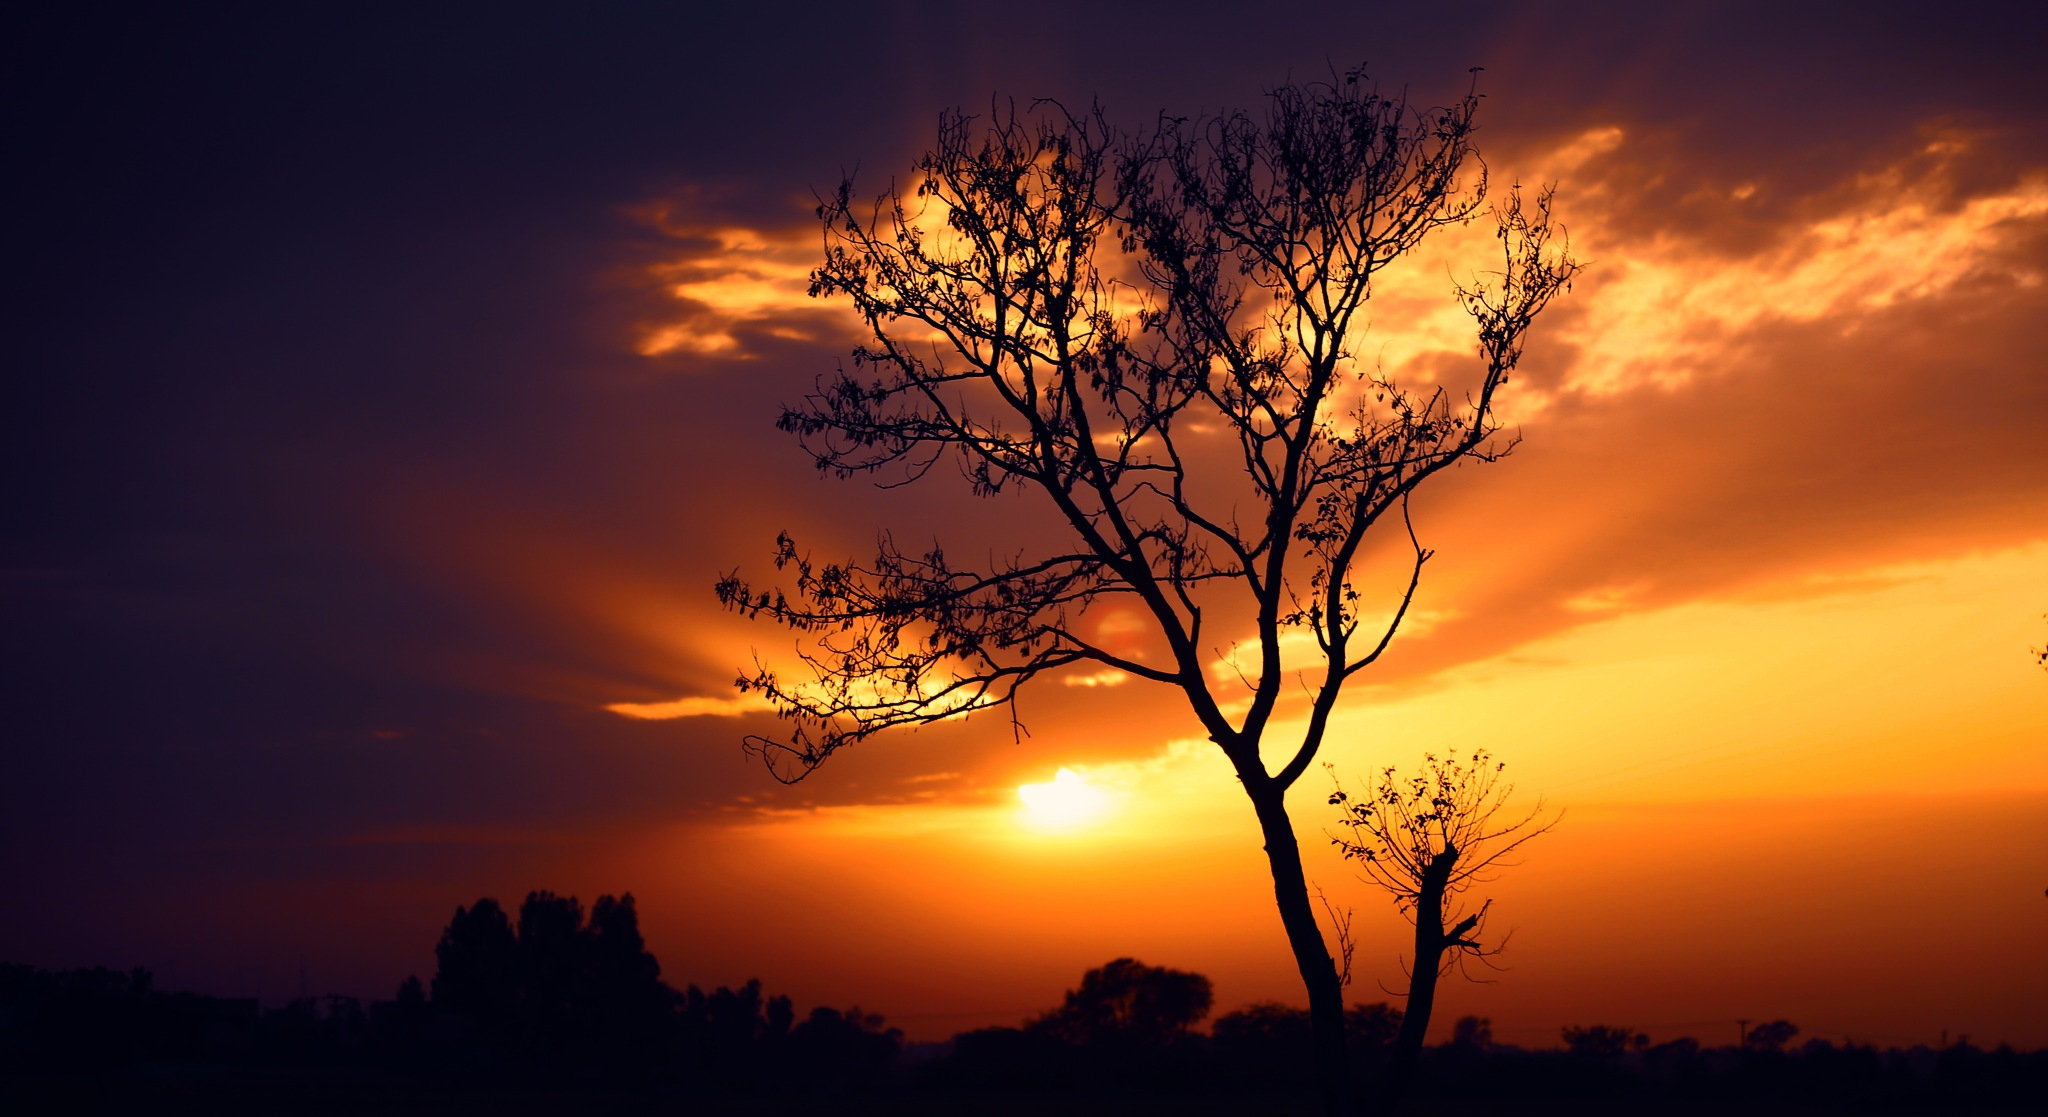 Sunset by Nouman Gee (Official)